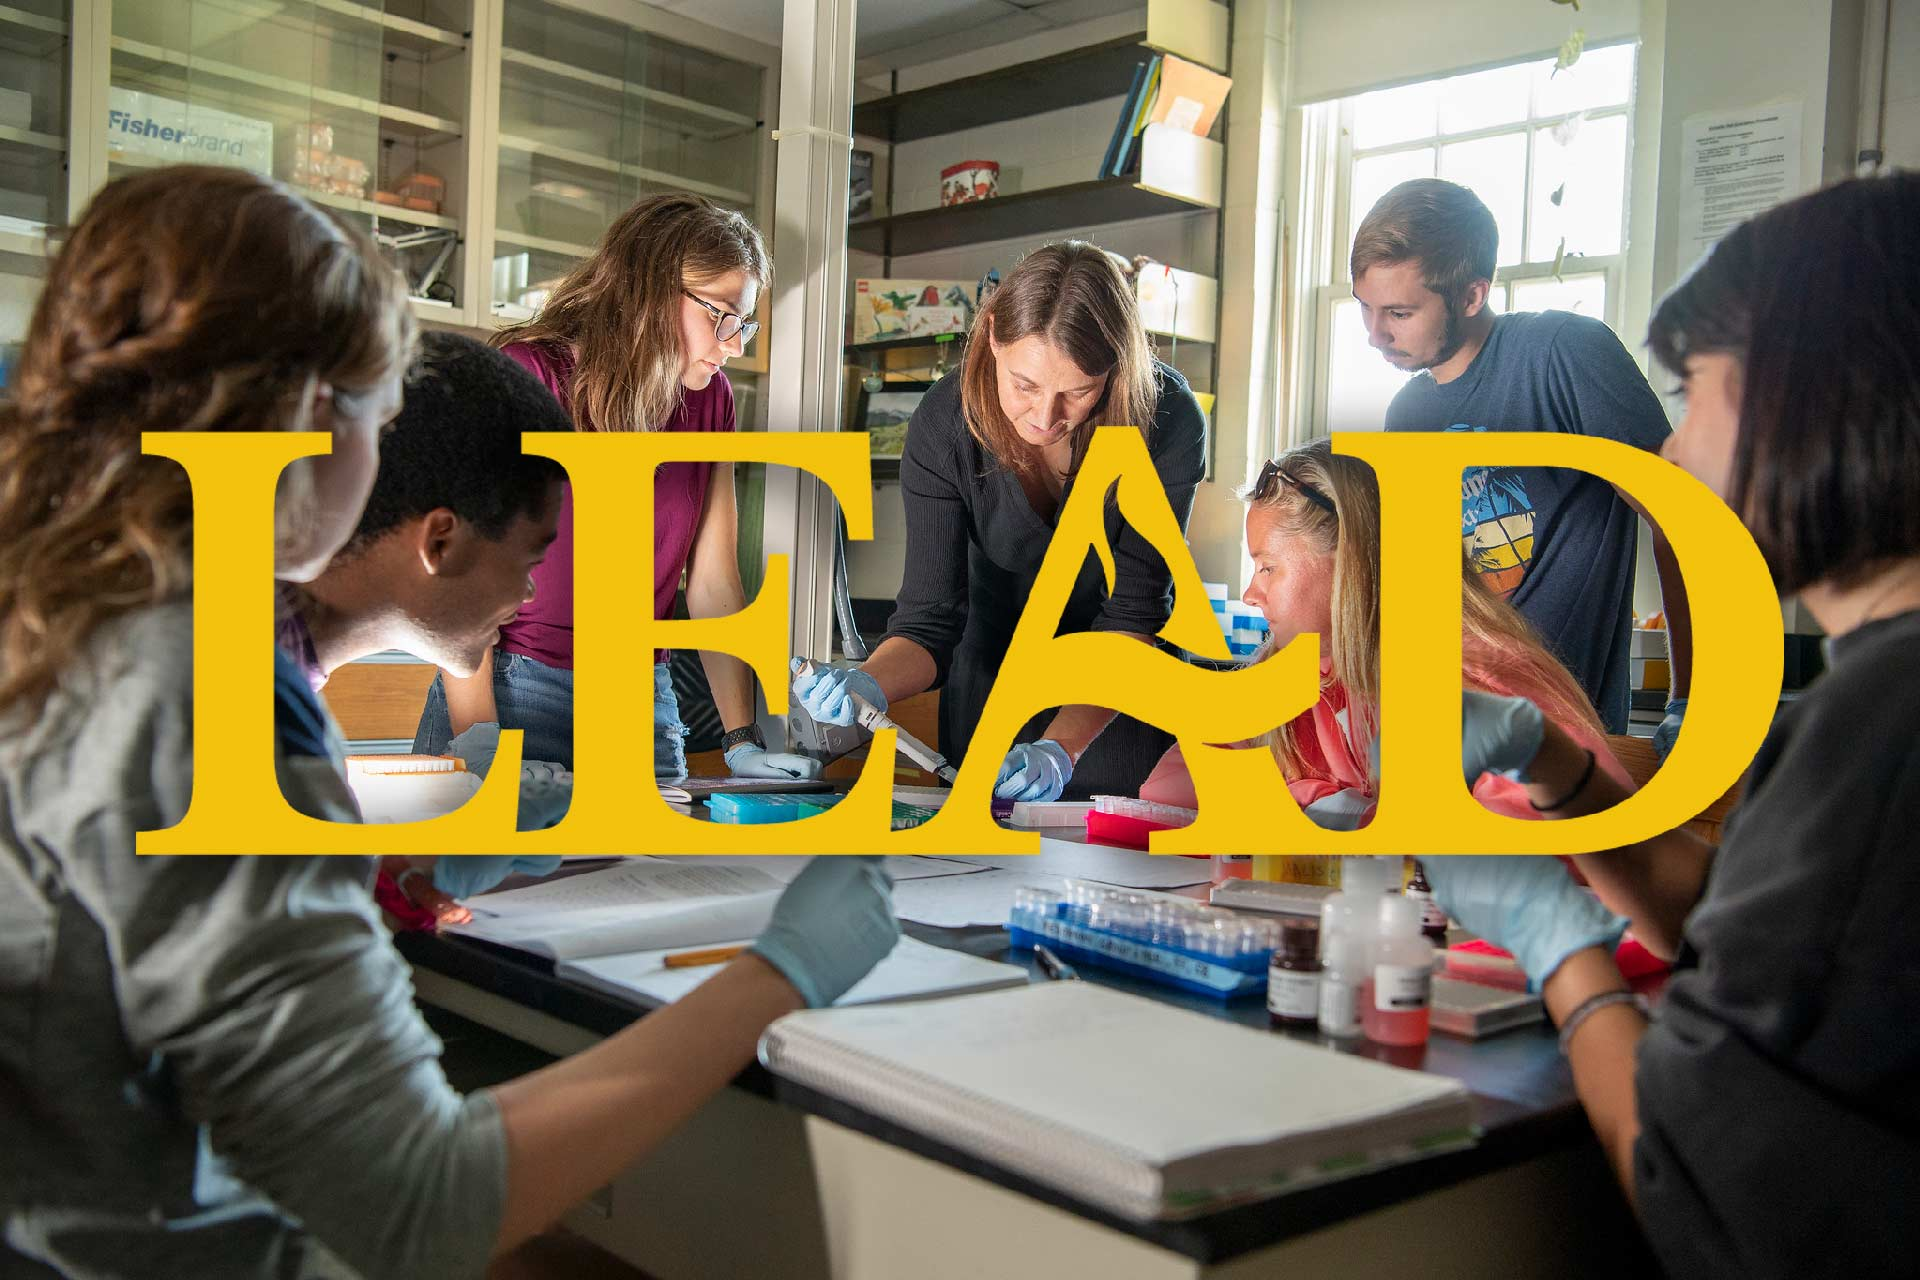 LEAD logo overlay over SMCM lab photo